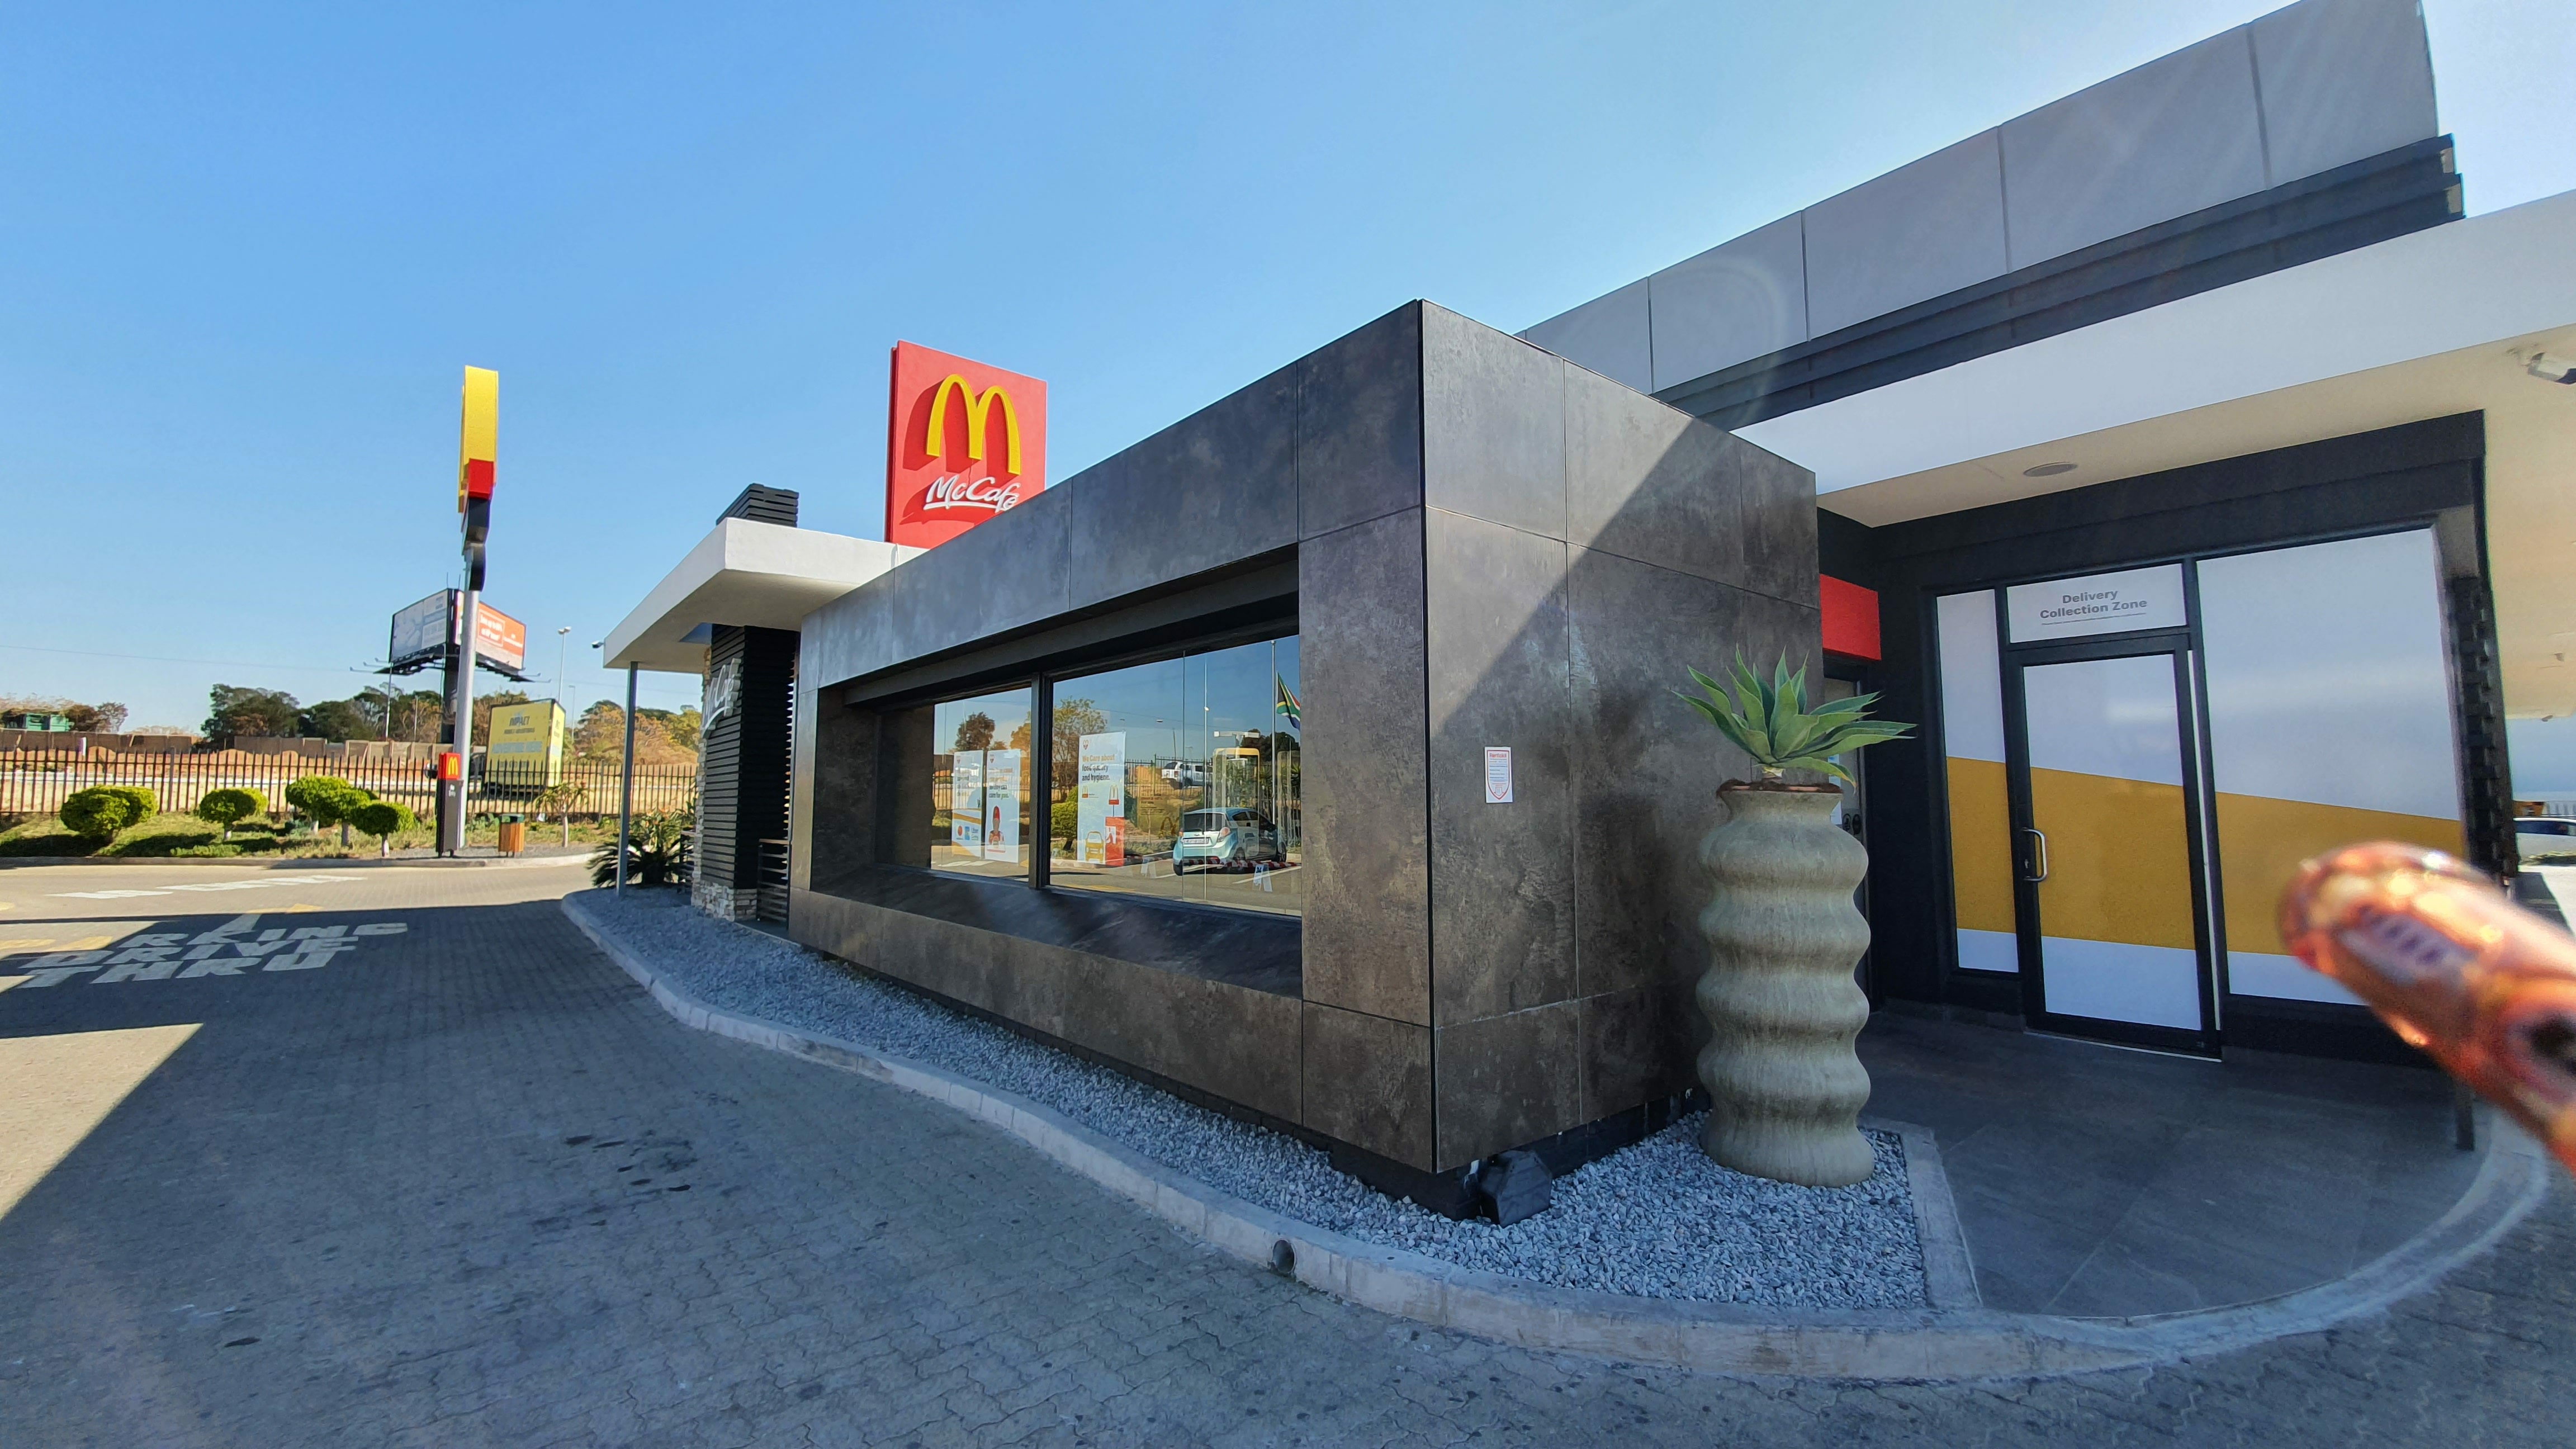 MAPEI Products Specified for Wall Feature at Fast Food Franchise